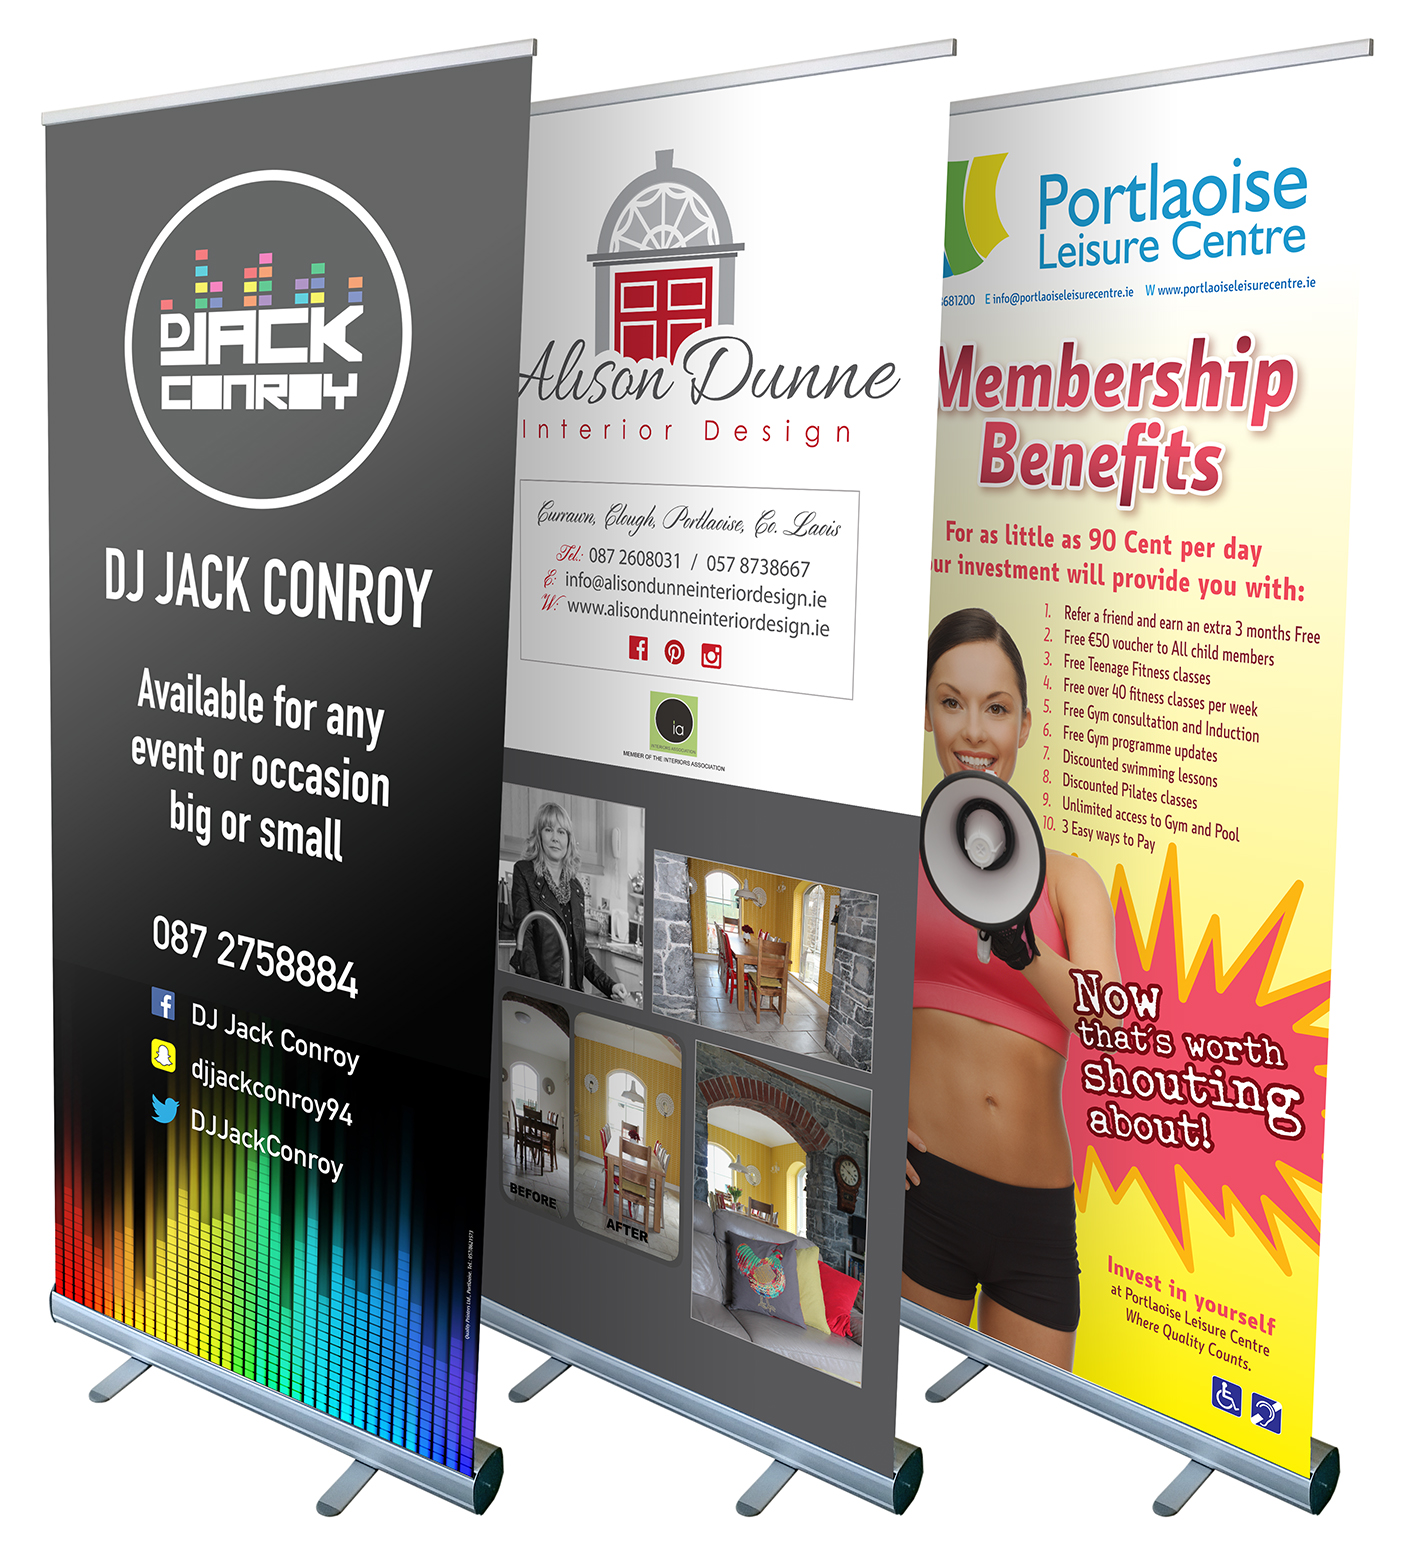 Large Format Printing, Posters, Display Banners with eyelets, Pull-ups, Pop-ups